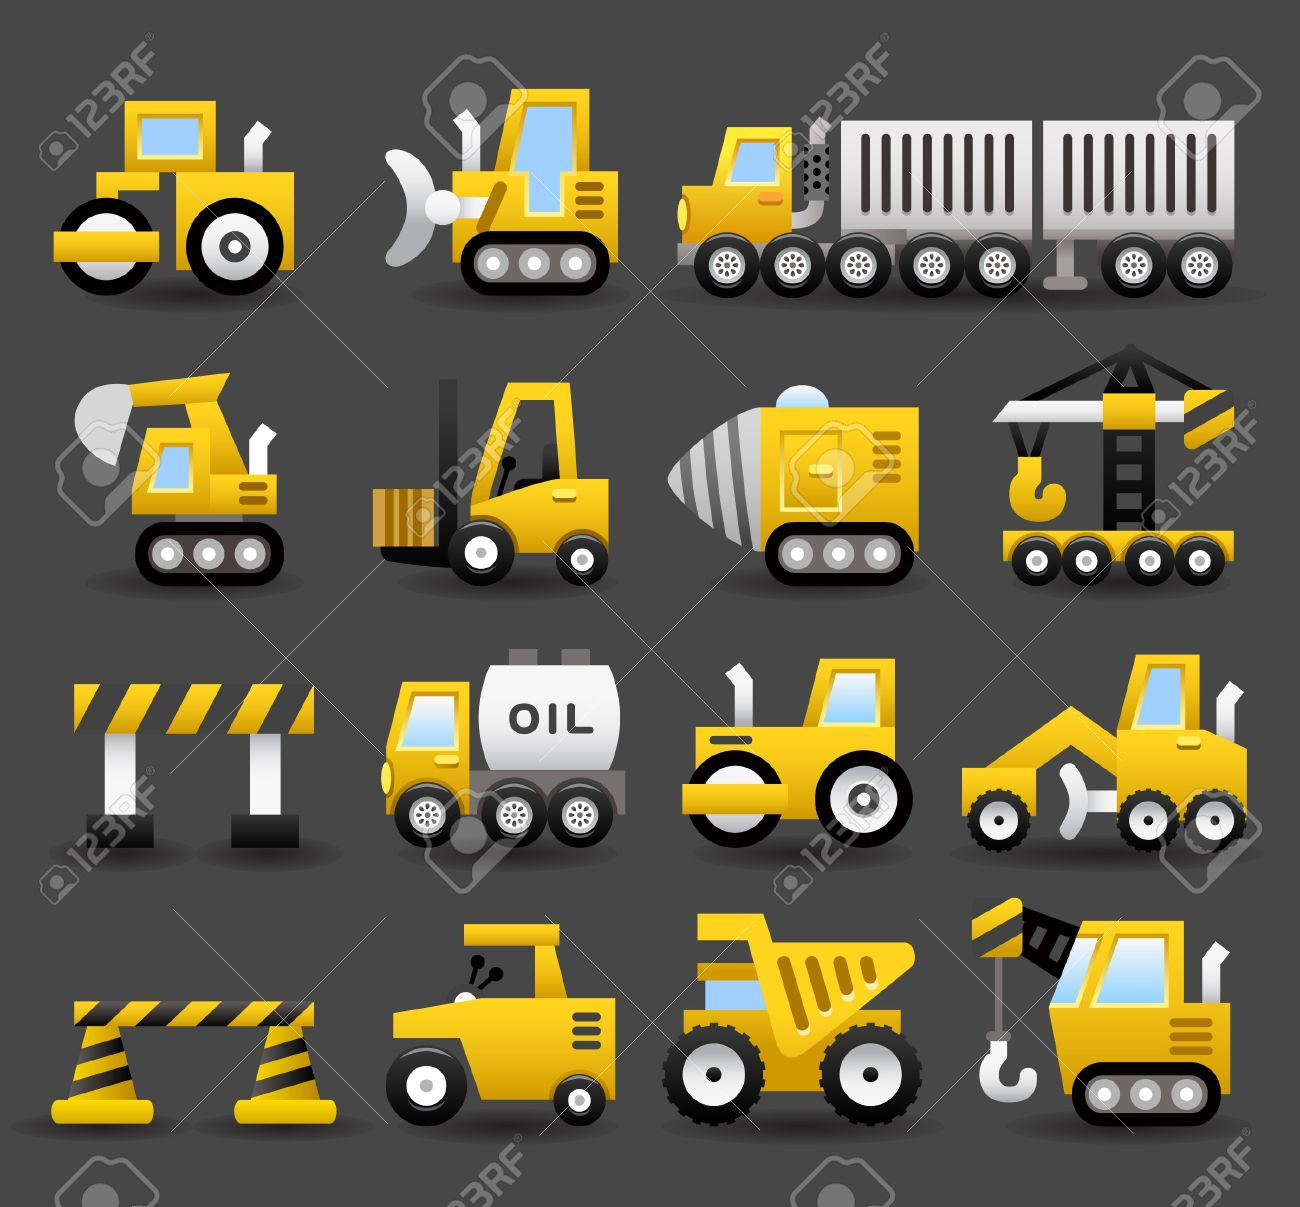 cartoon car,vehicle,machine,transportation icon set Stock Vector - 10556167